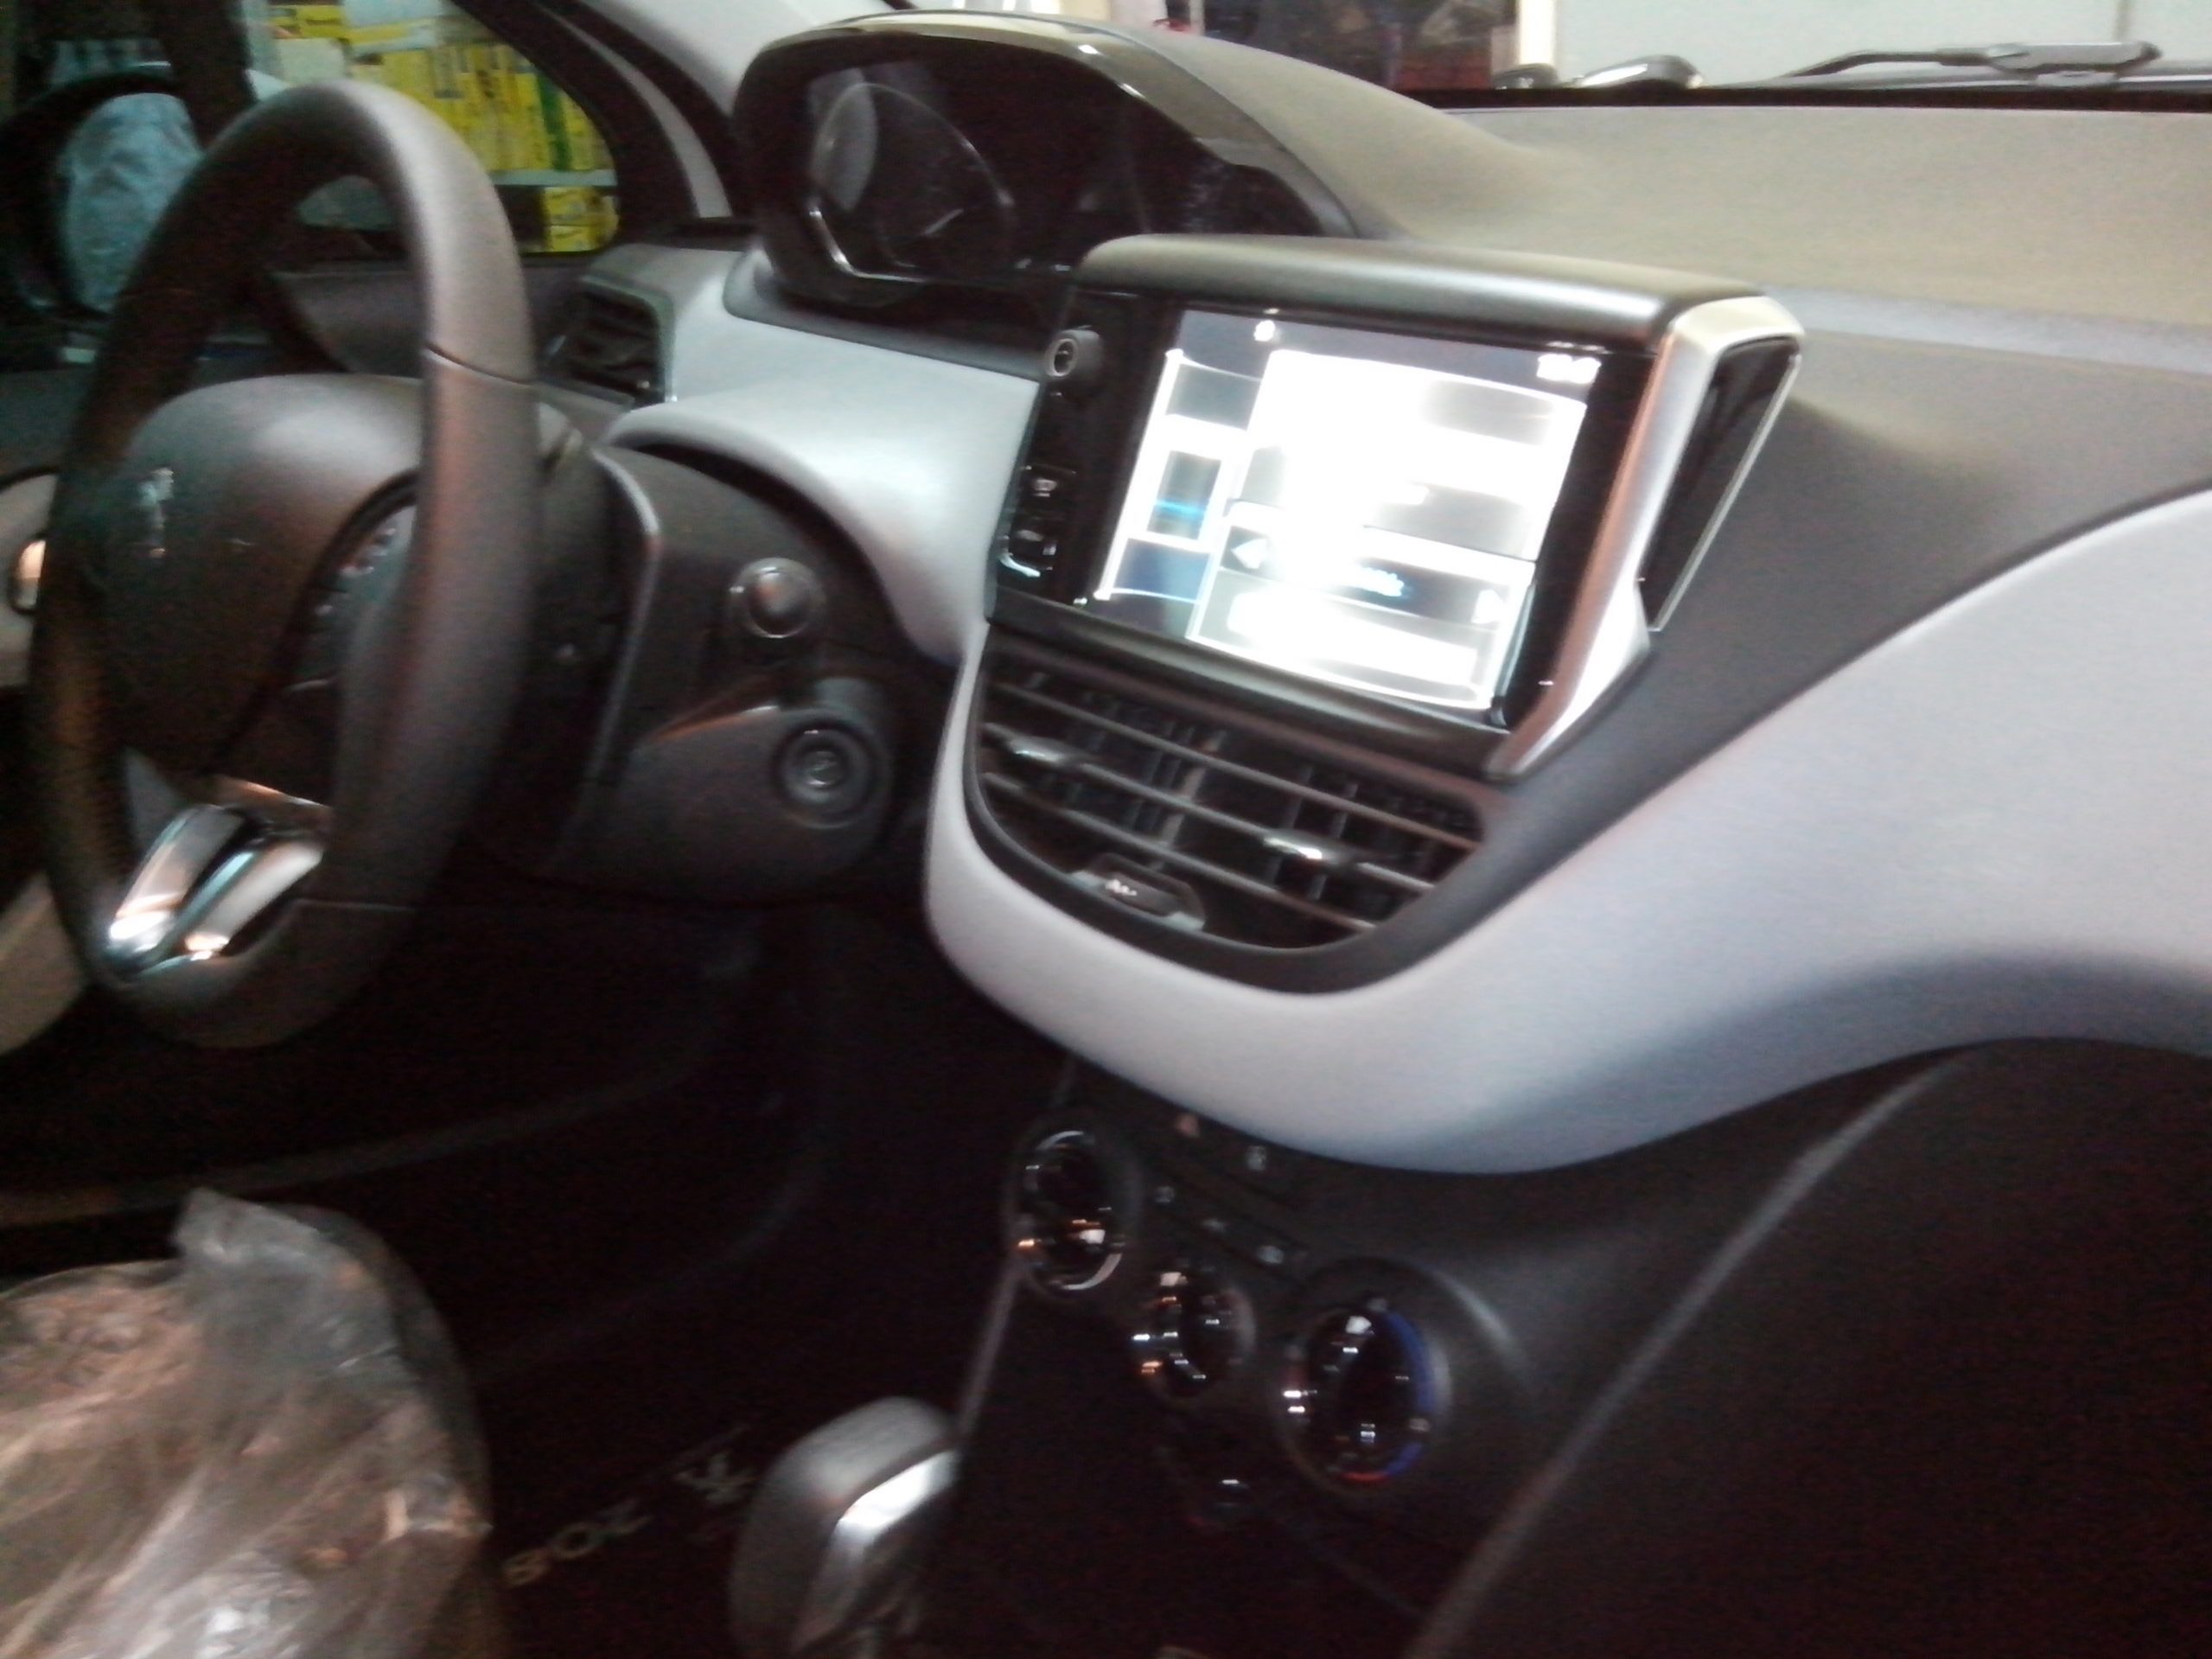 Talento-automotivo-cascavel-pr-peugeot-208-interior-dvd-multimidia-1